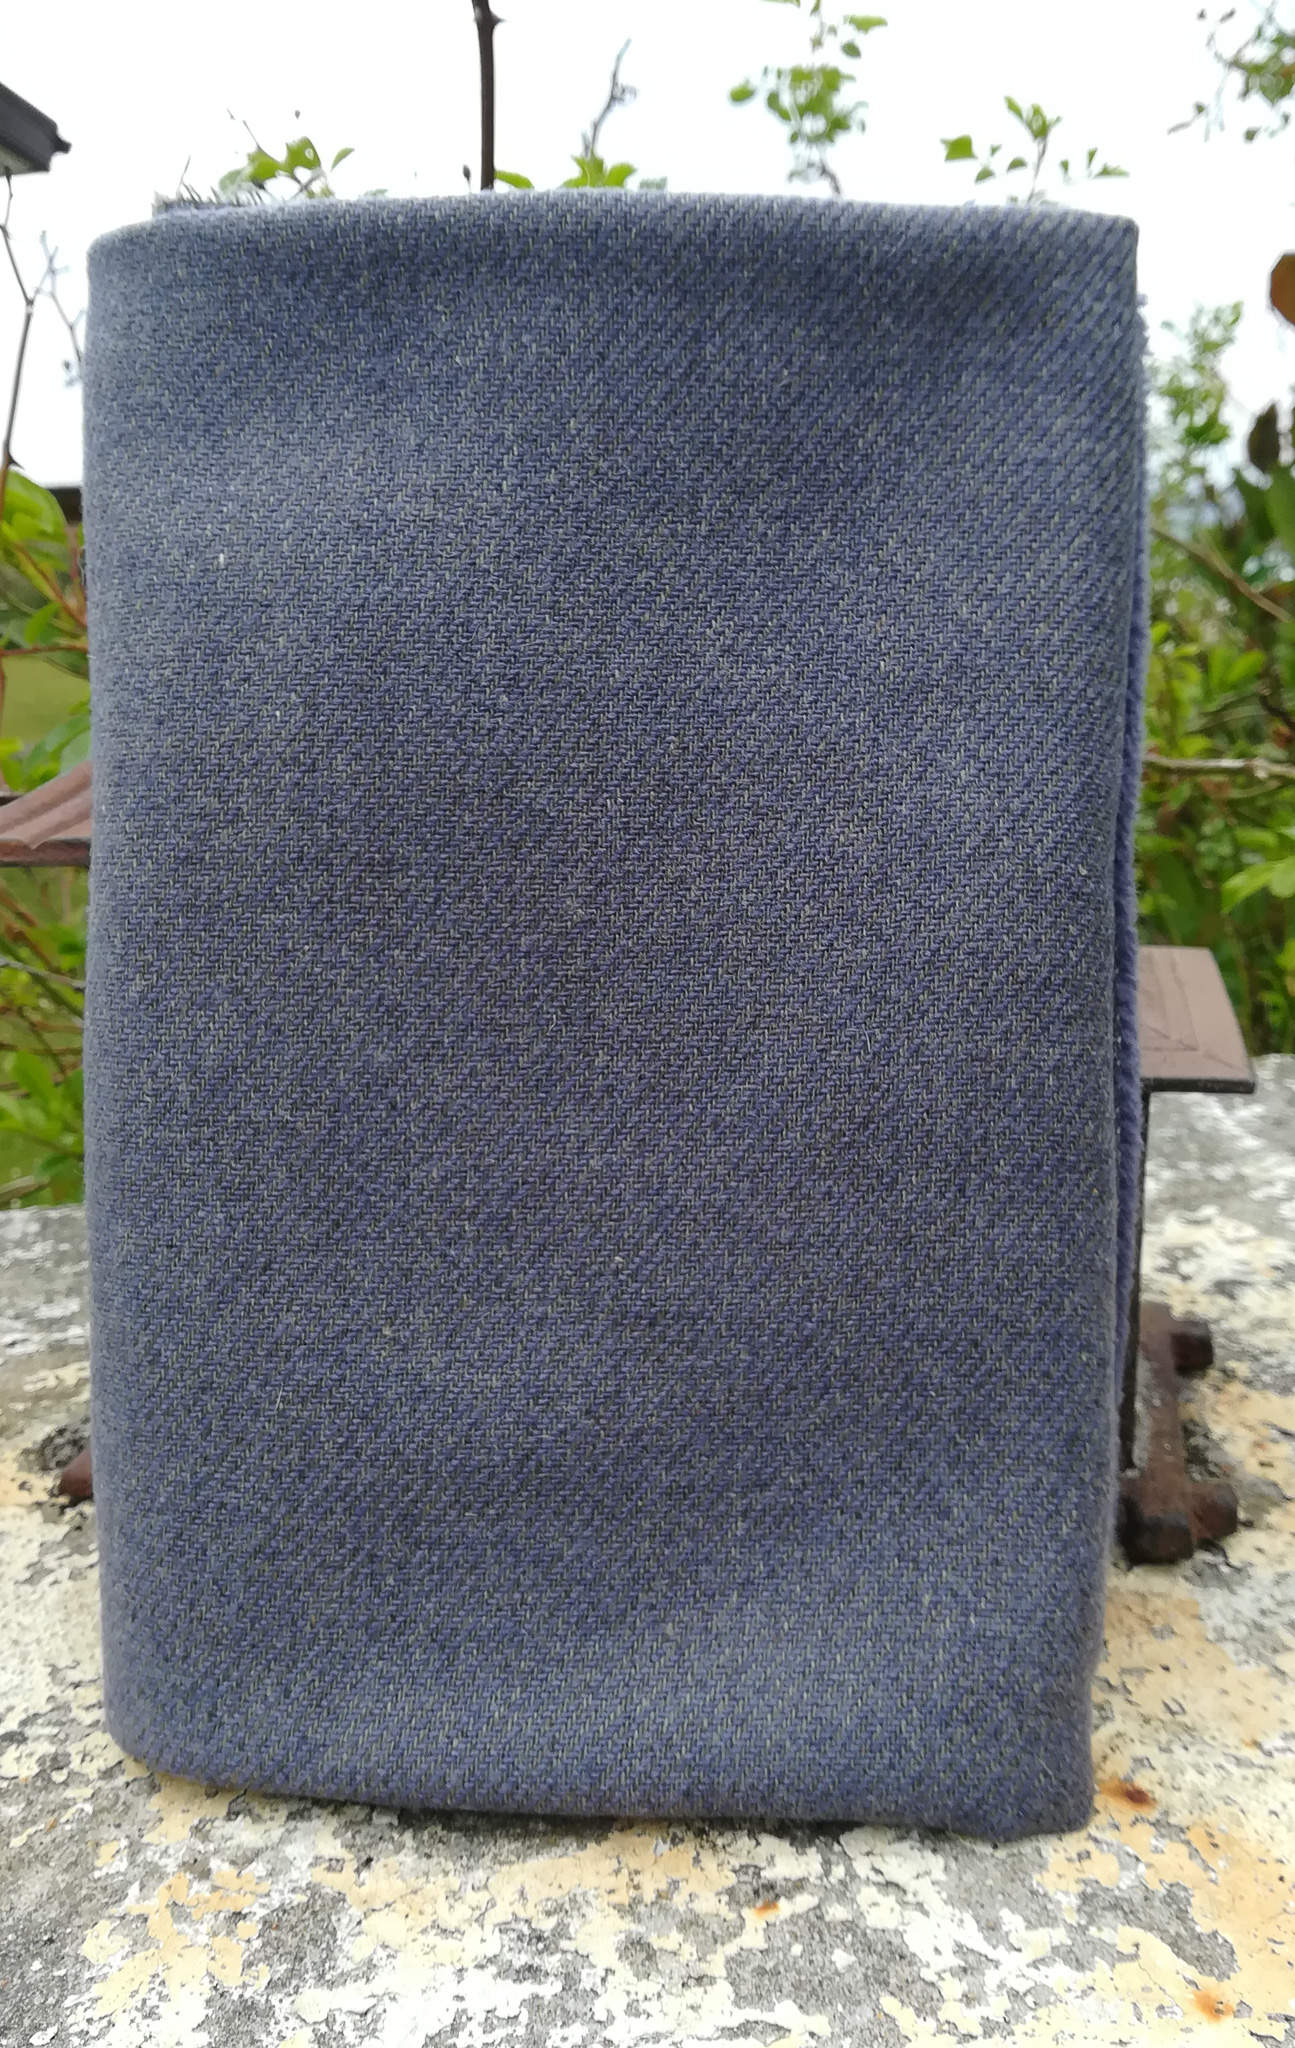 "New Fabric Affair Donegal Tweed:""Slate Grey""."